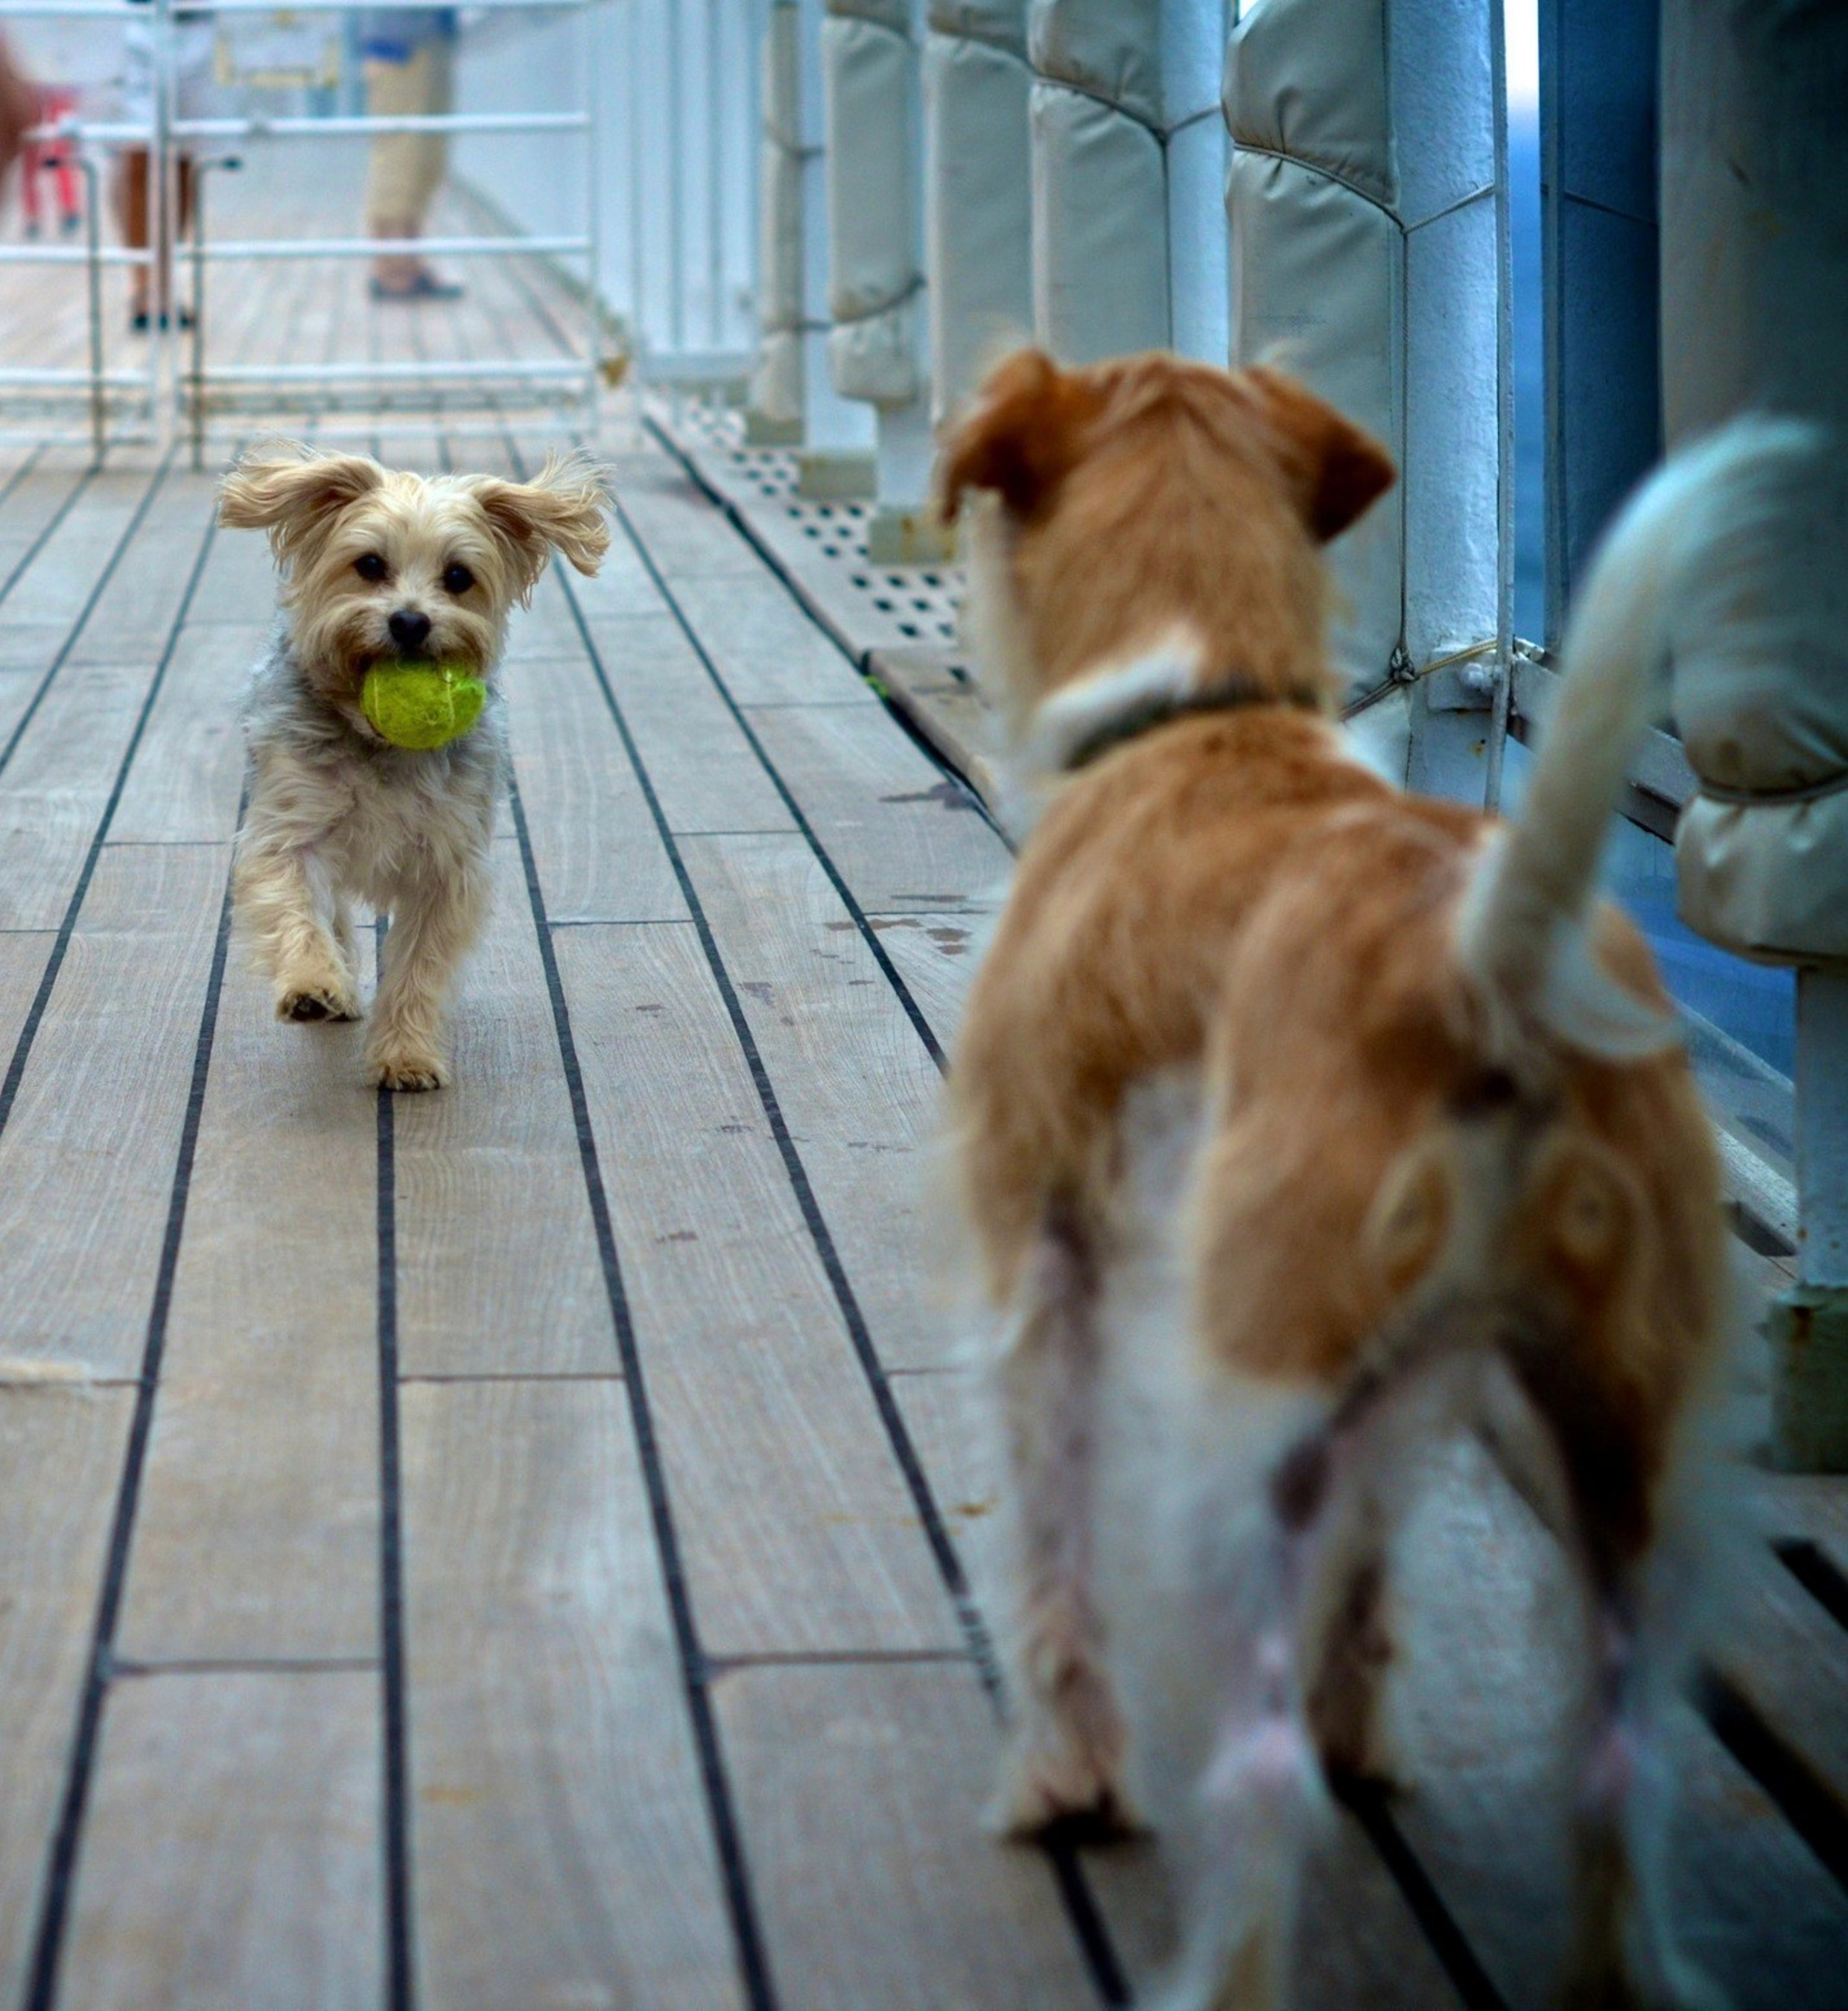 Queen Mary is the only ship in the world to offer dedicated kennels for dogs and cats (photo credit Simone Seckington)